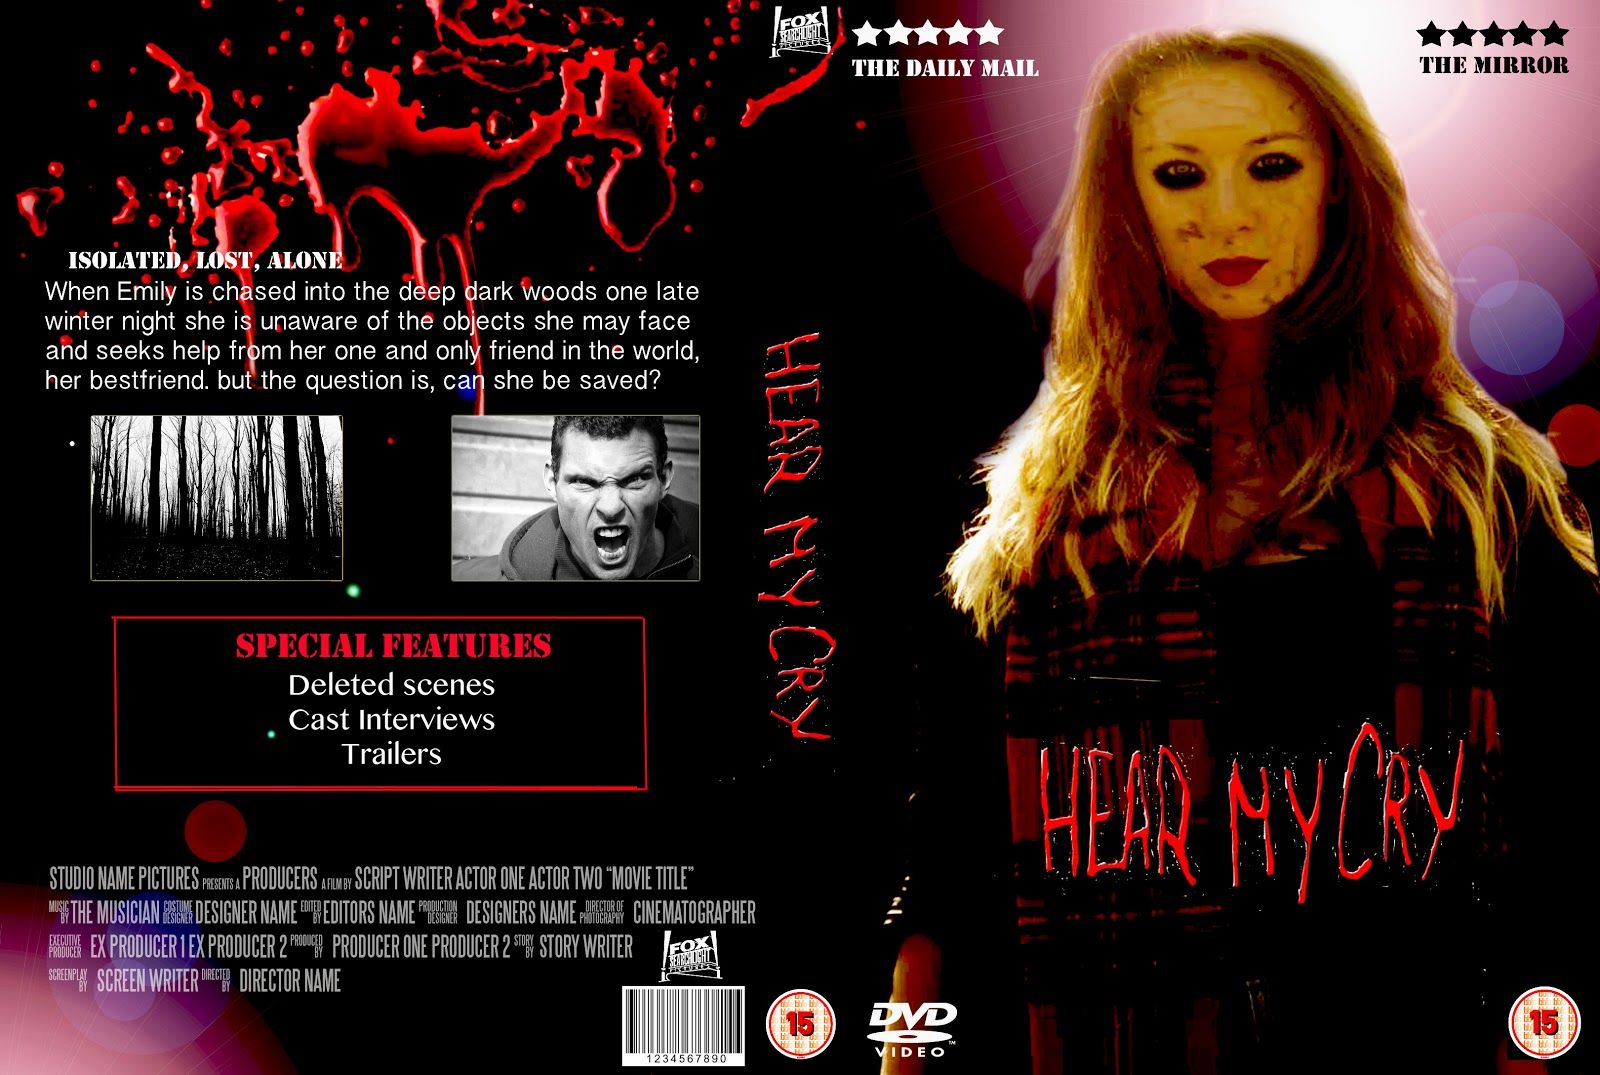 A2 Media: My DVD Cover